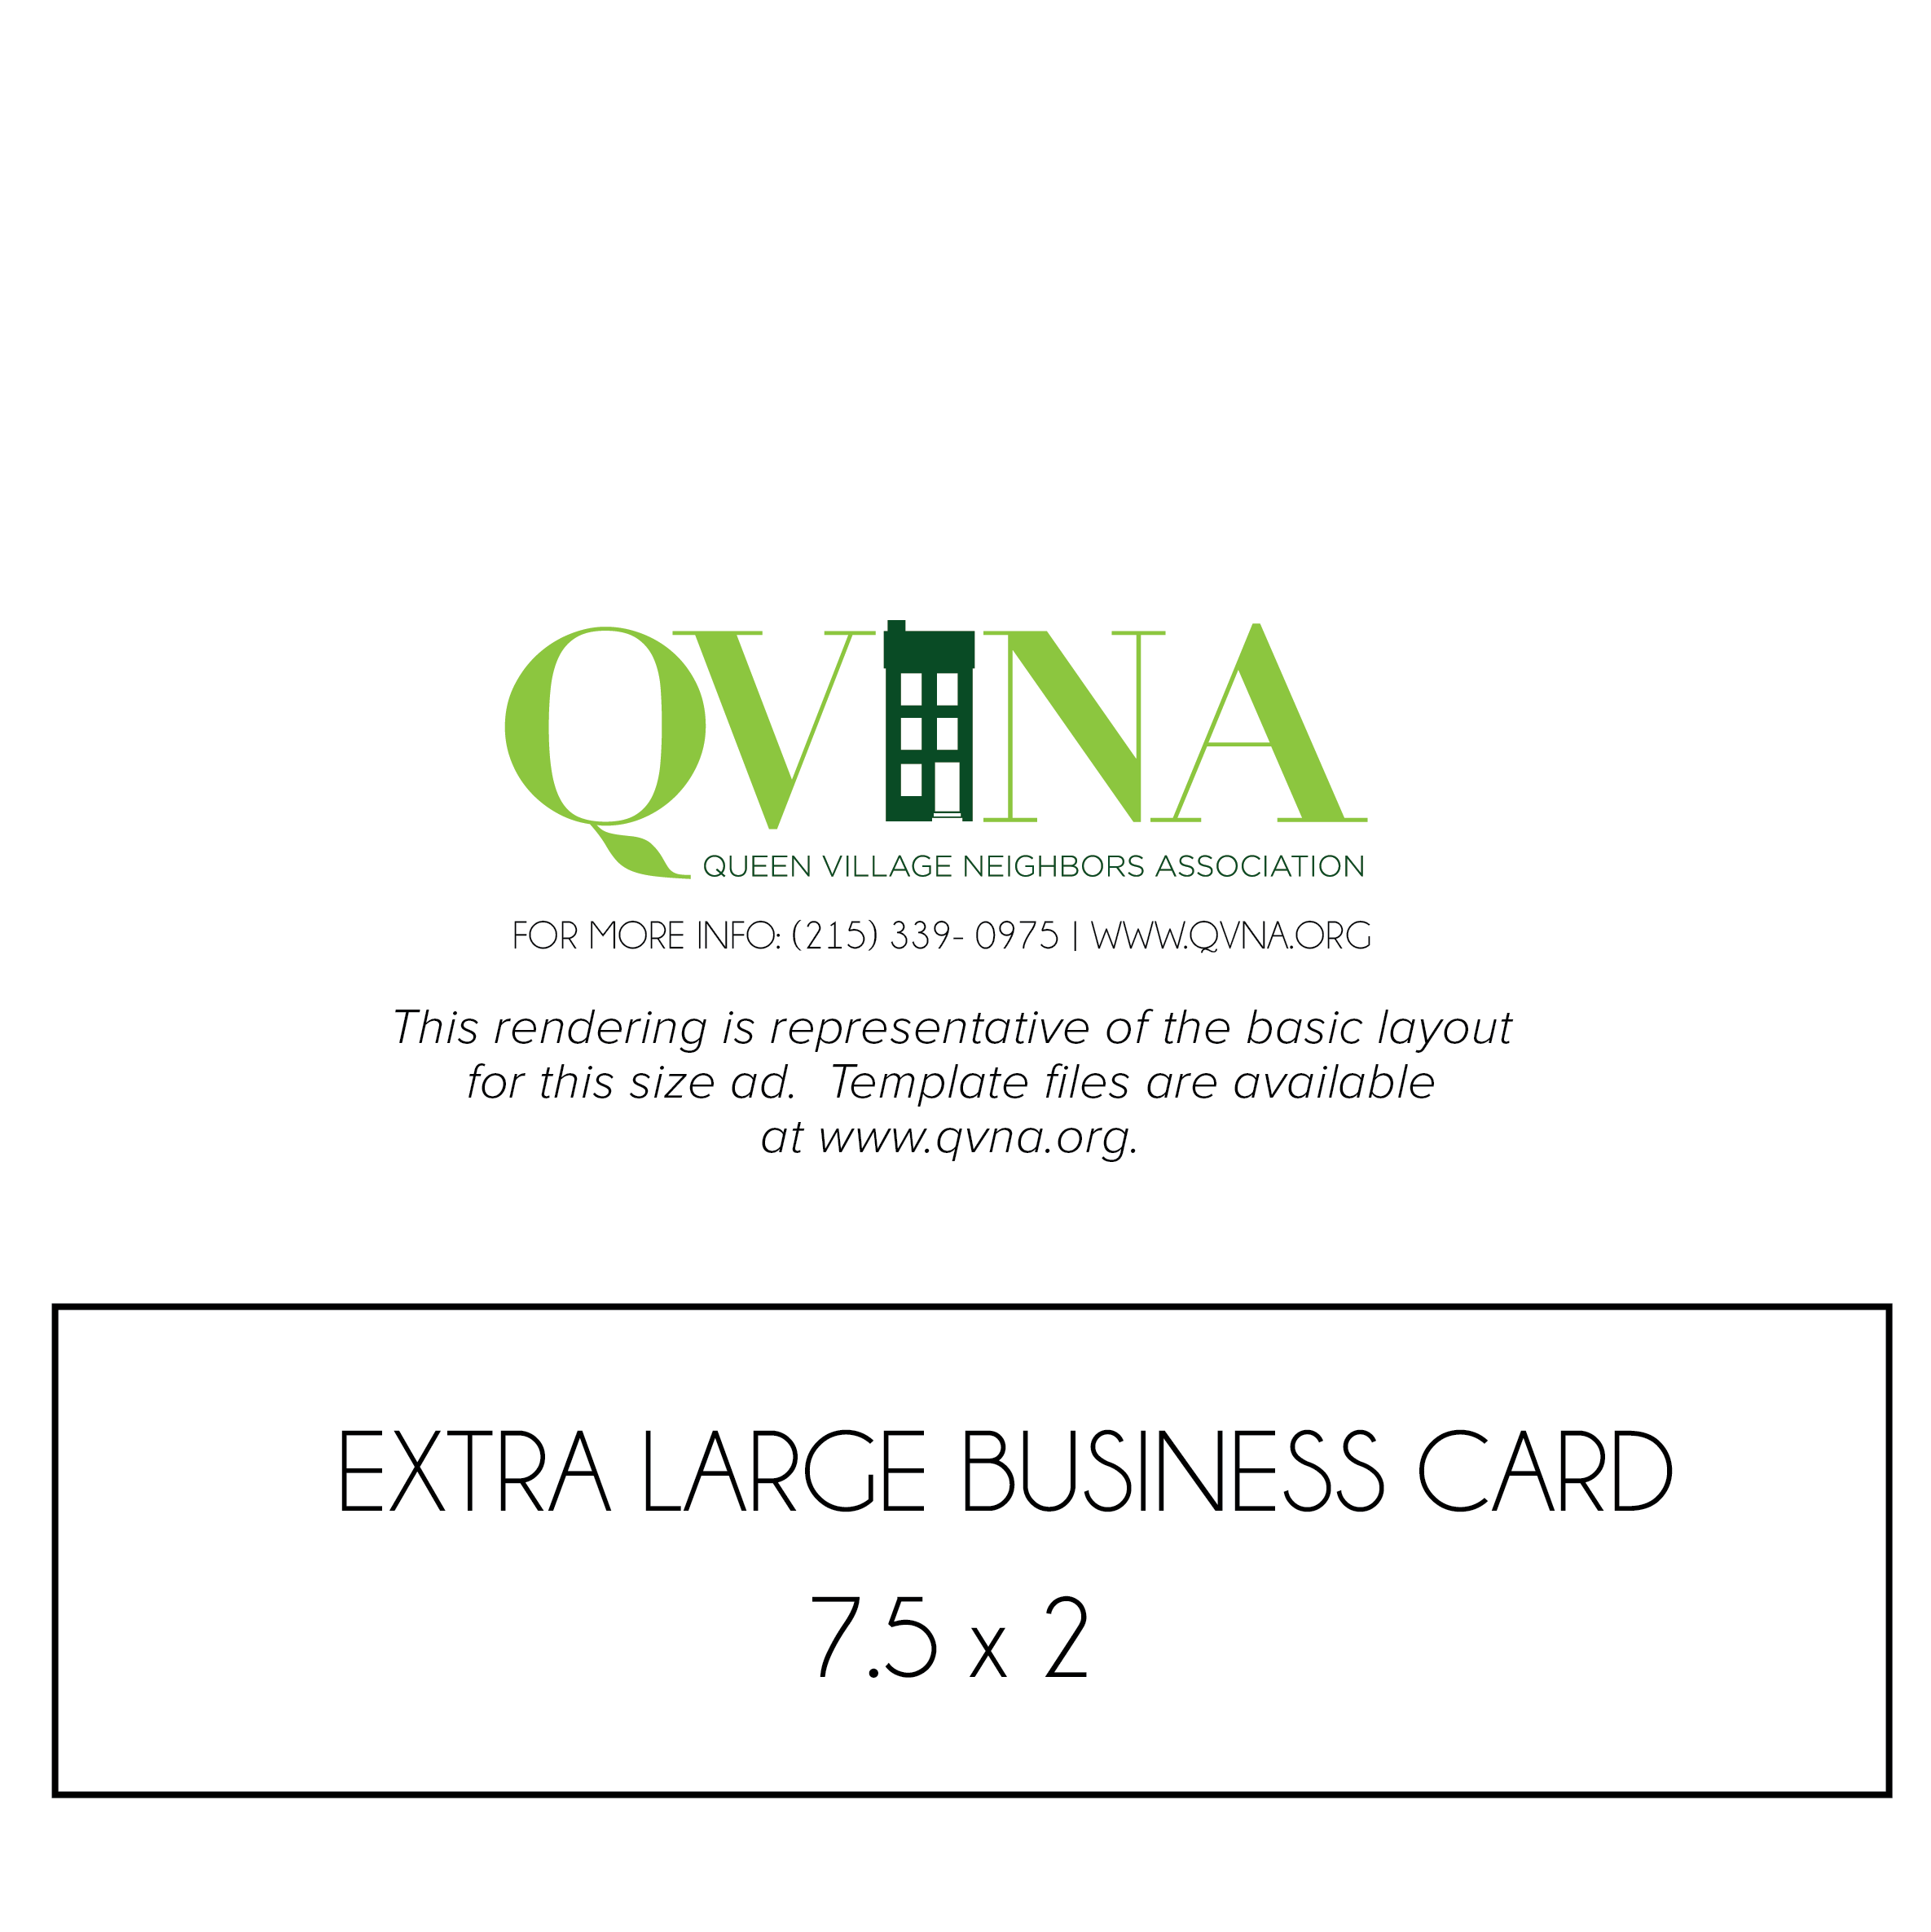 Extra Large Business Card – Queen Village Neighbors Association